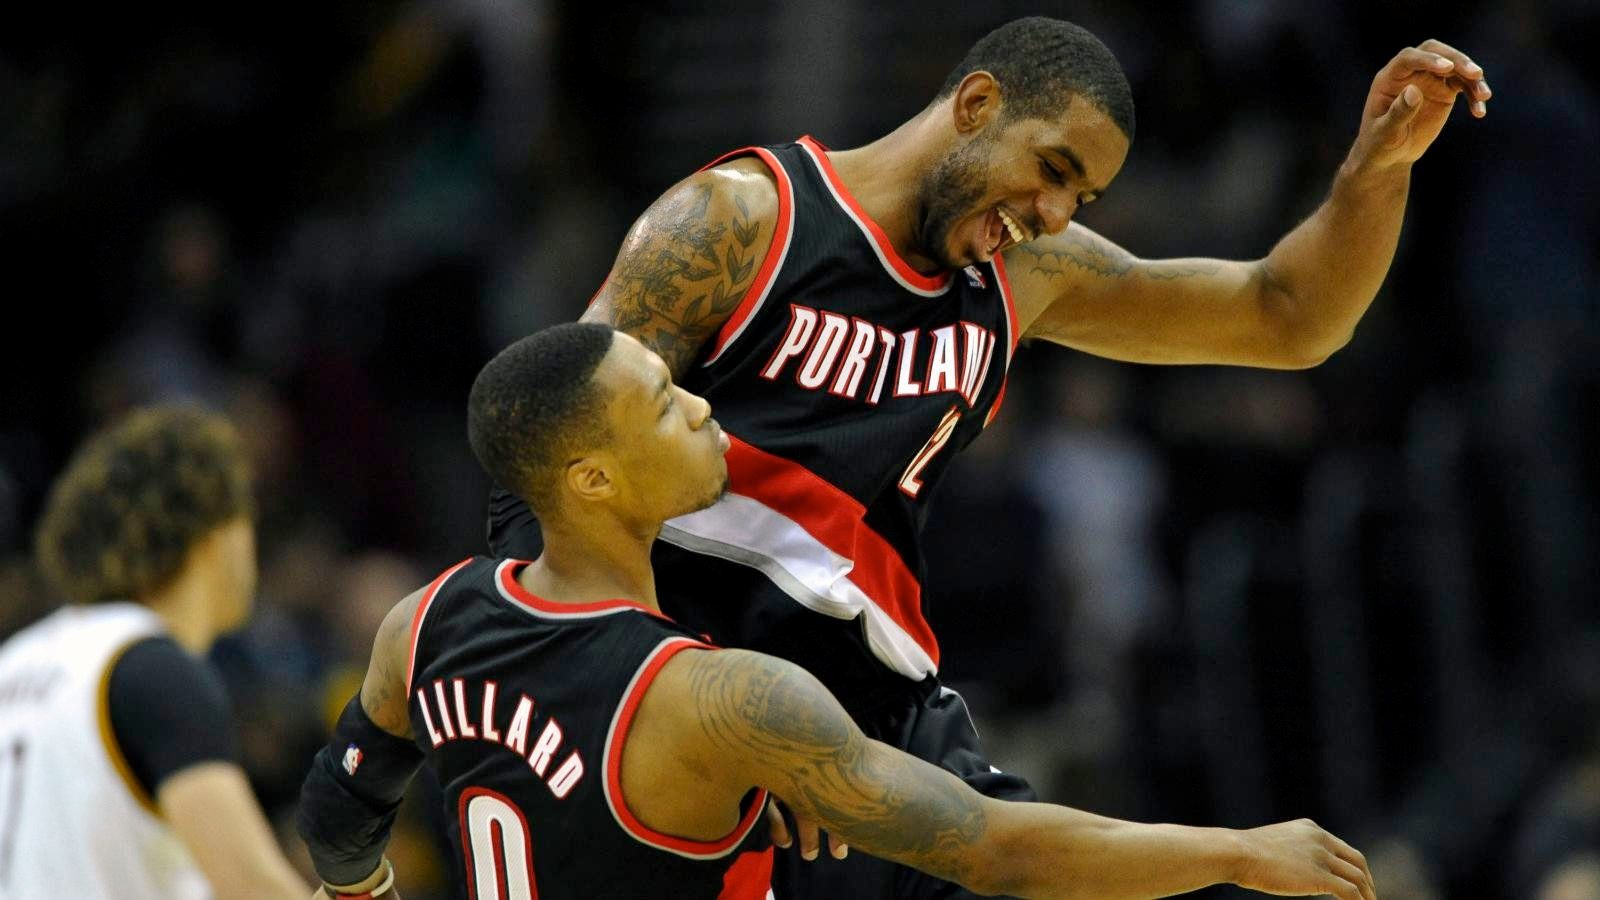 Top 15 Best Players In Portland Trail Blazers History